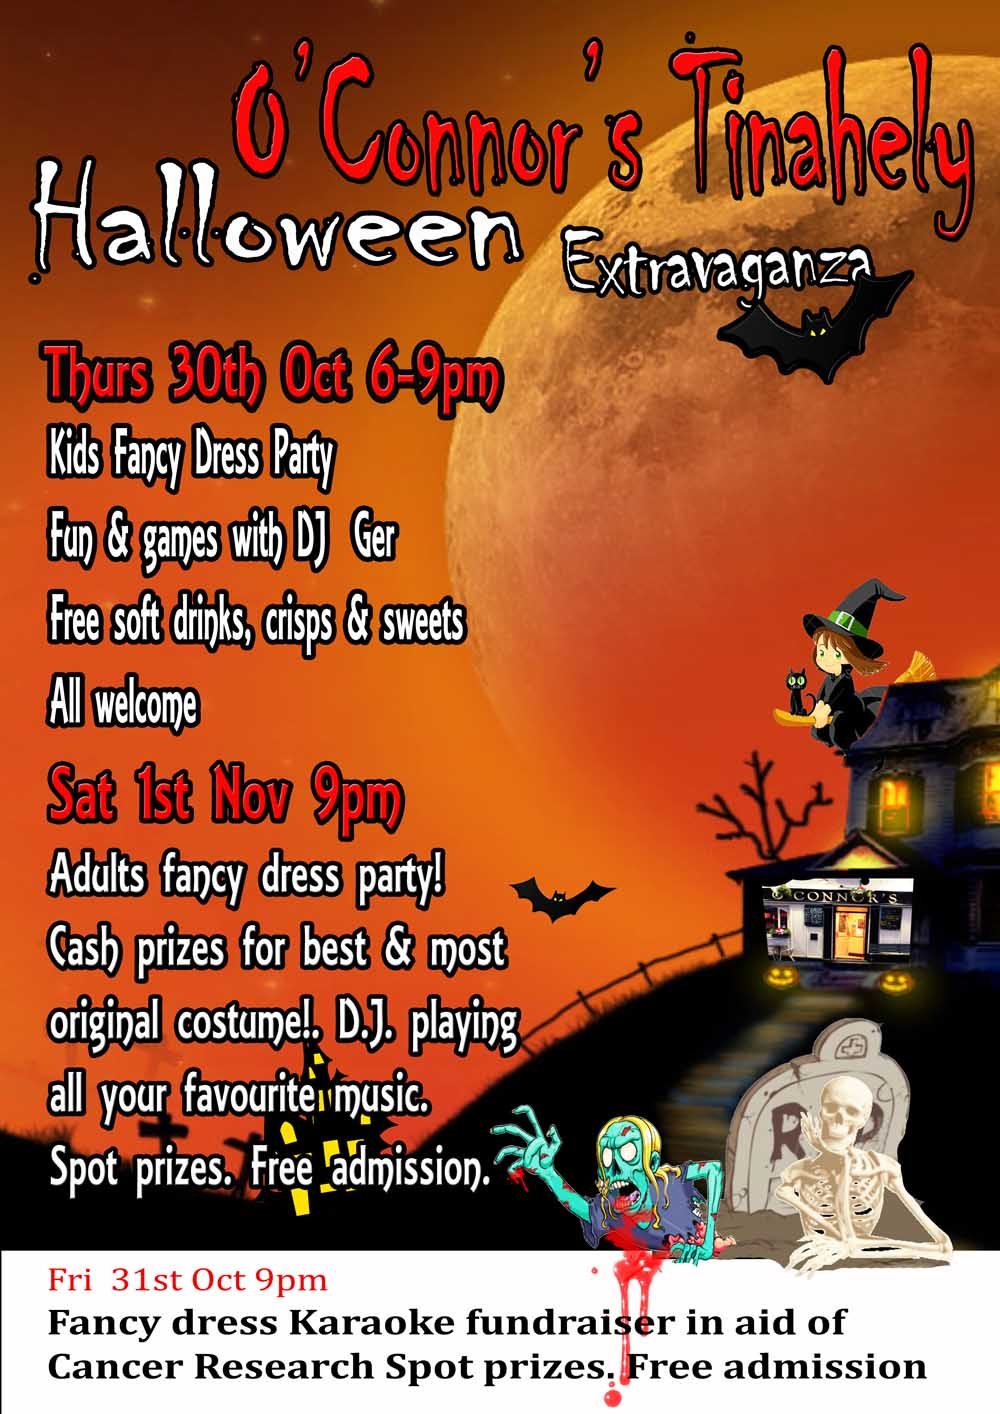 Halloween Poster tinahely